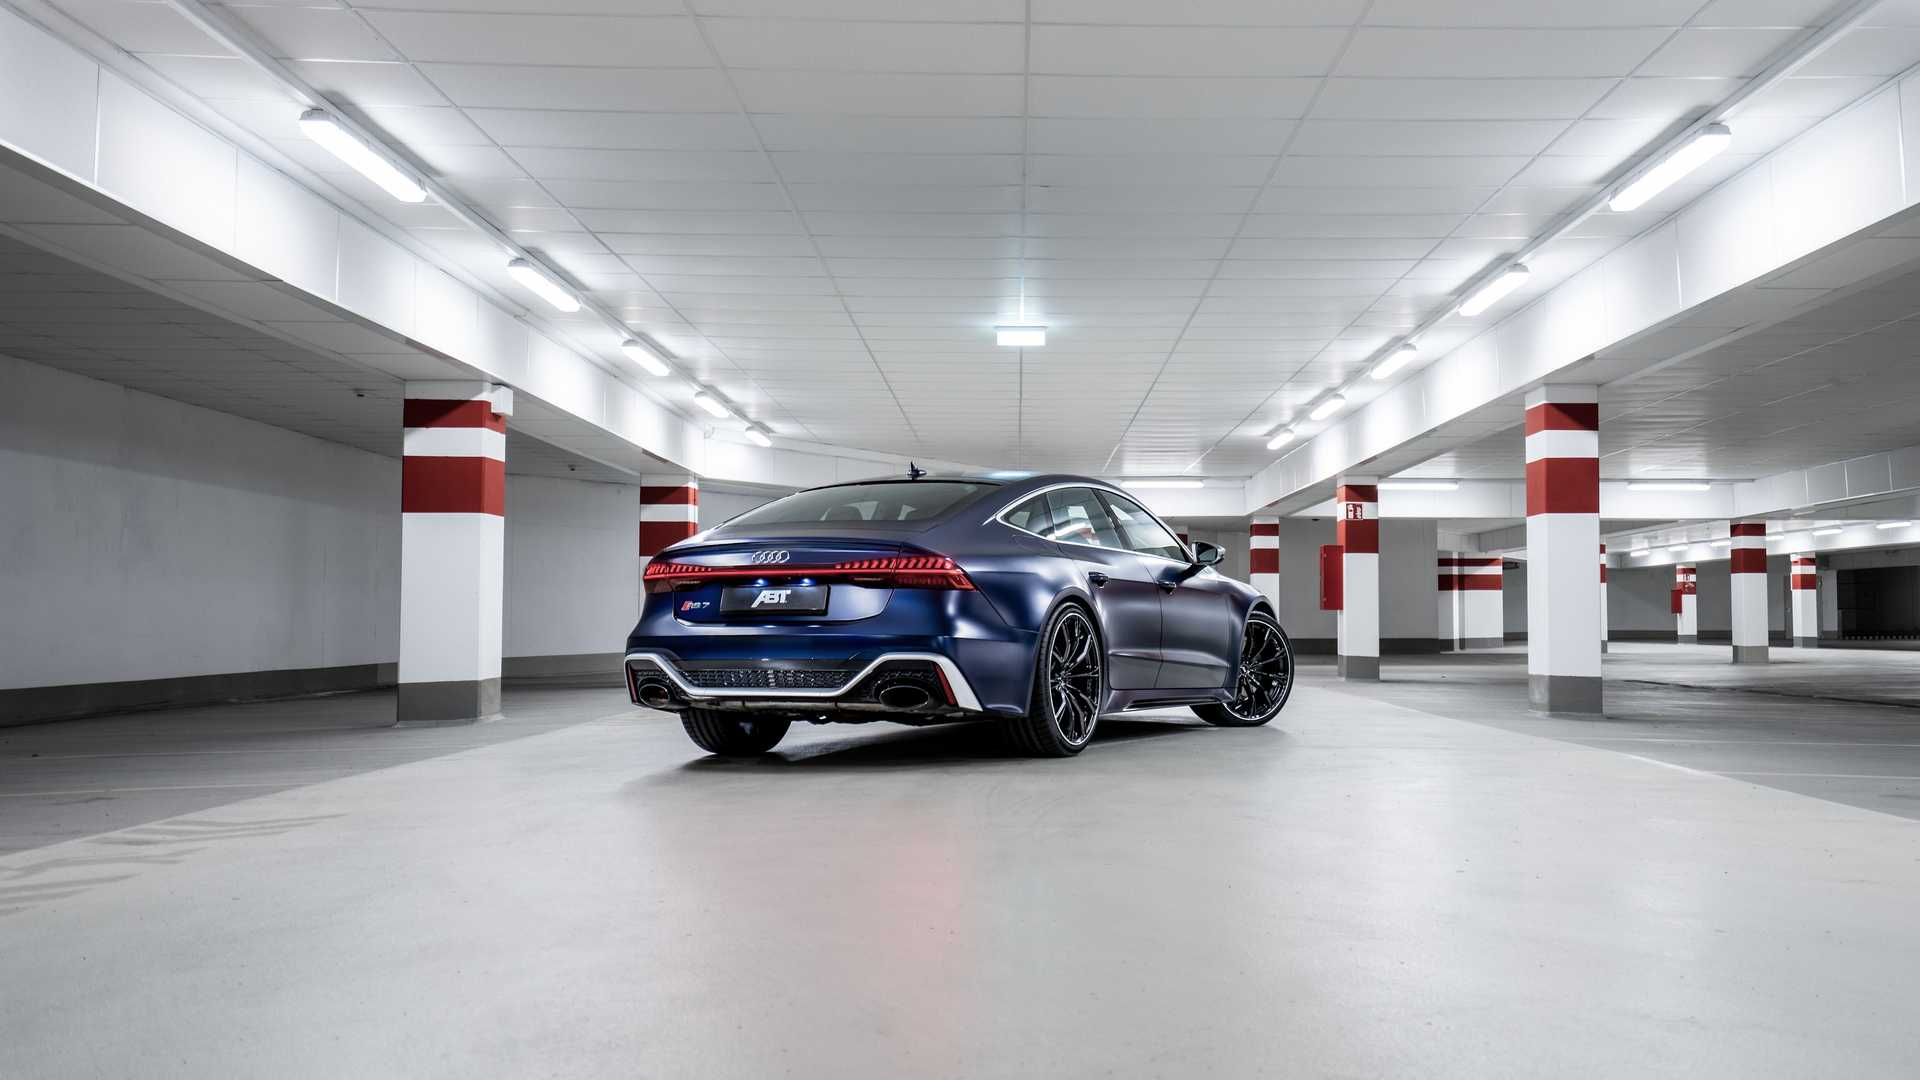 2020 ABT Sportsline Audi RS7 Sportback RS7 R Tuning 9 ABT Sportsline Audi RS7 Sportback mit 700 PS u. 22 Zöller